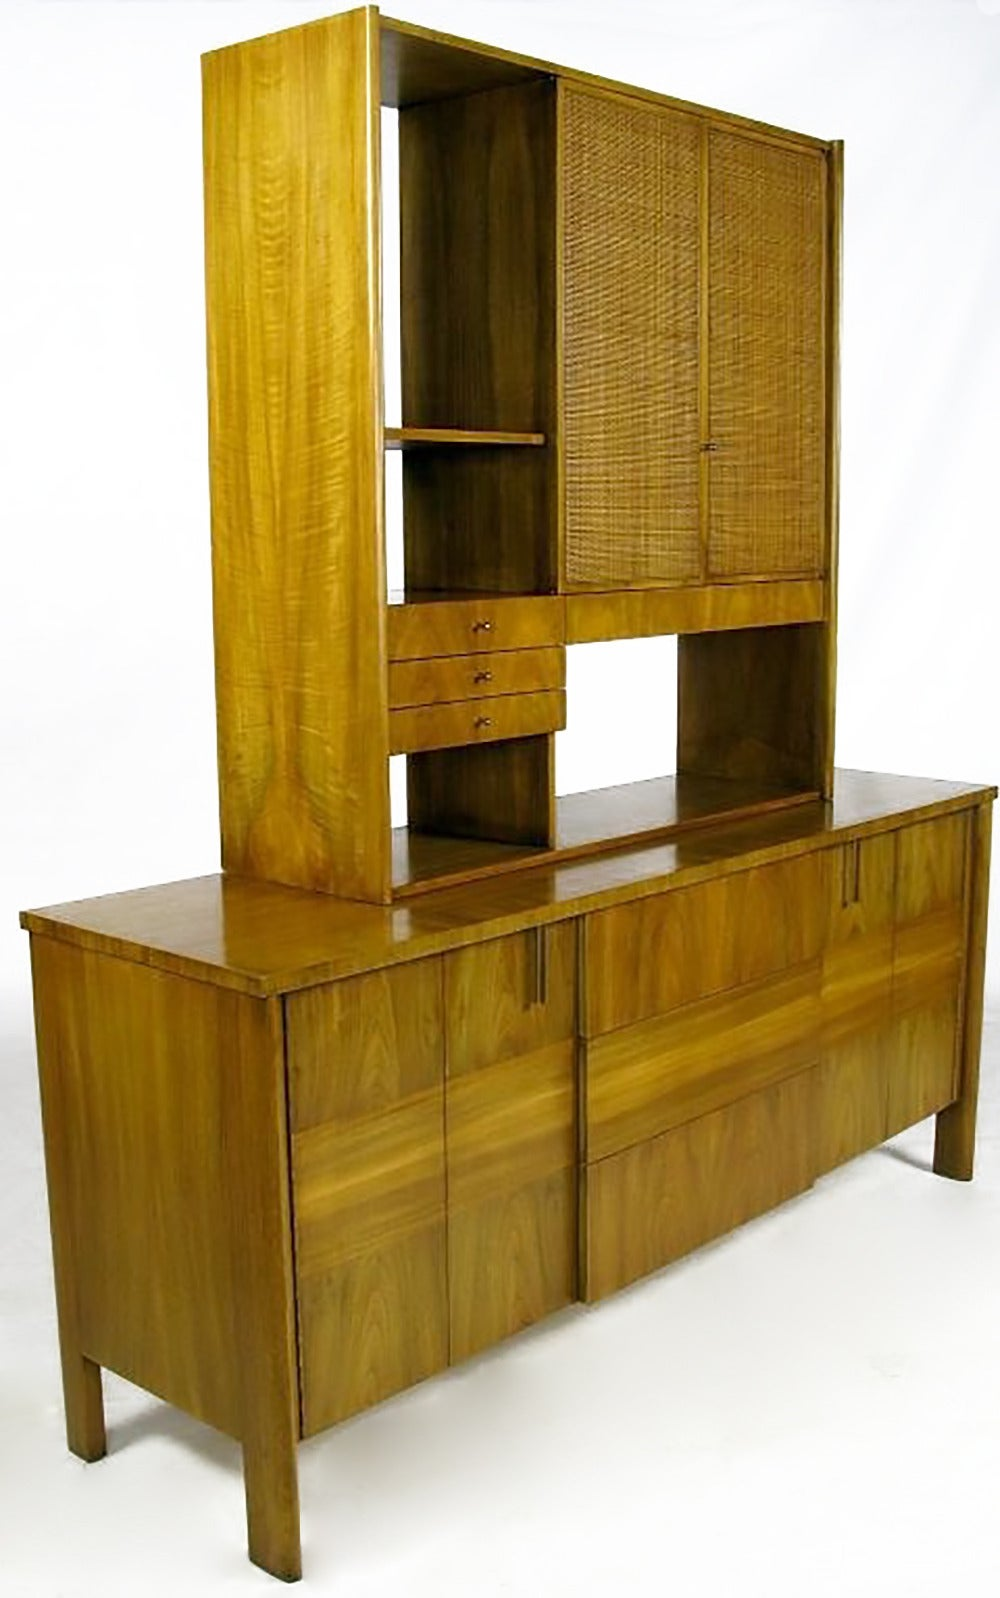 Dale Ford Walnut and Cane Sideboard by John Widdicomb In Good Condition For Sale In Chicago, IL